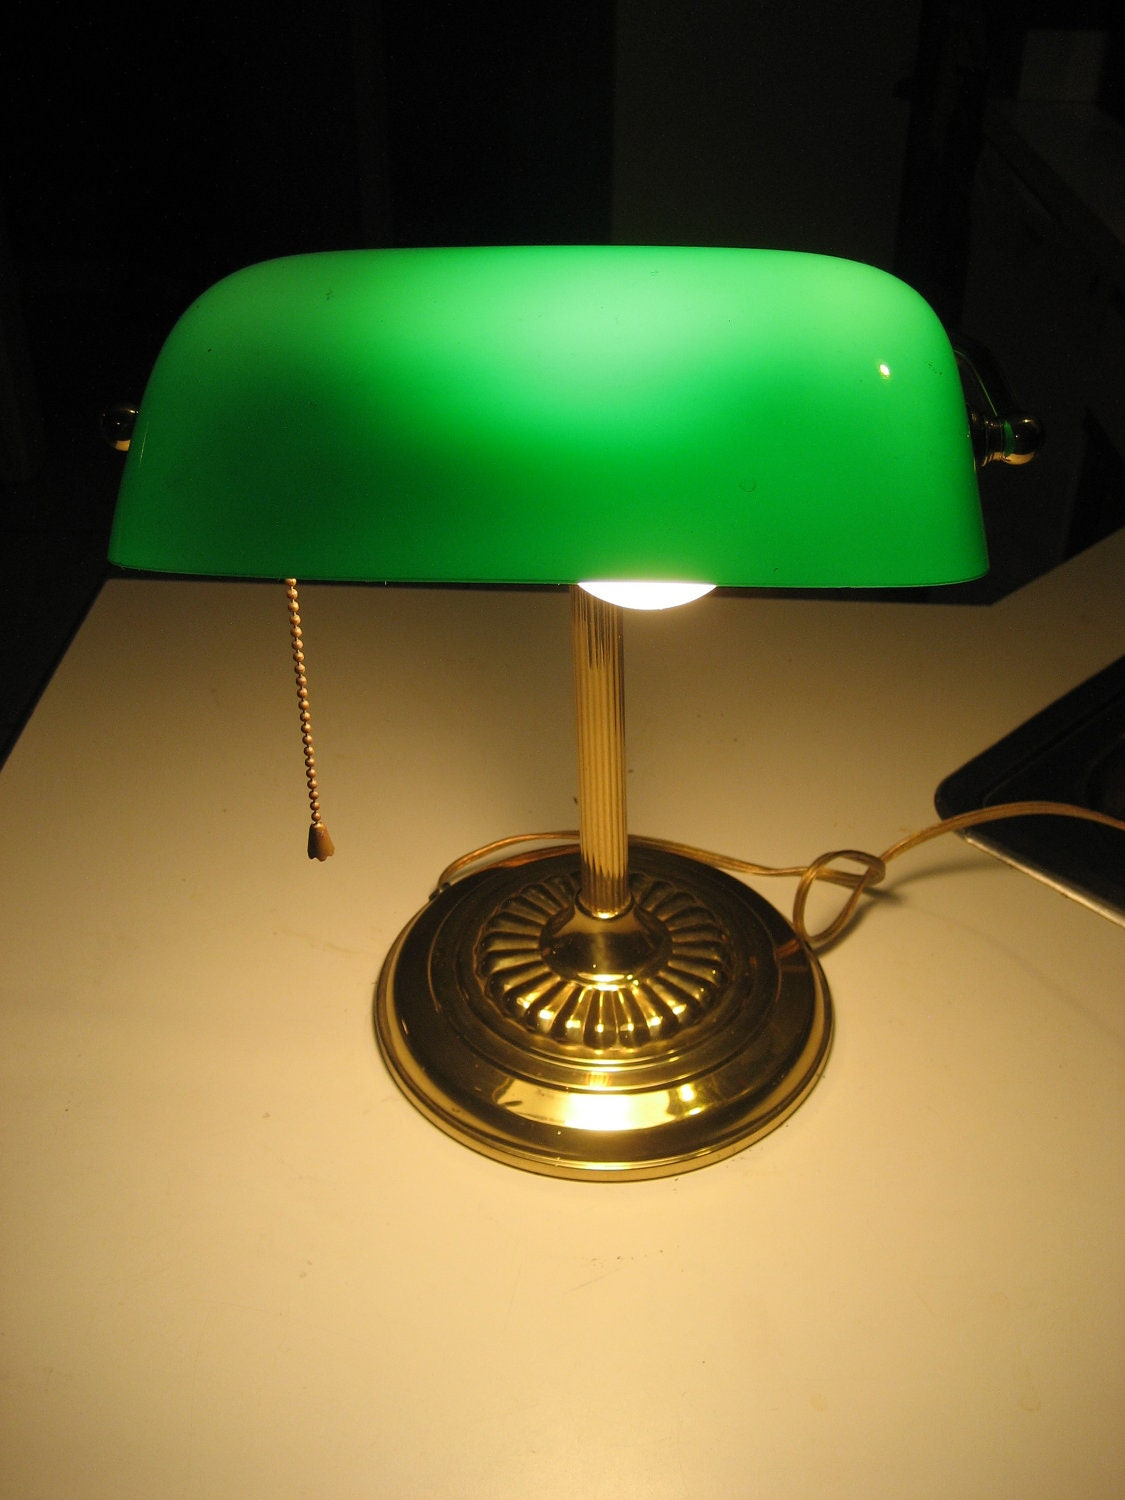 Green bankers lamp - glass shade, traditional design - polished brass